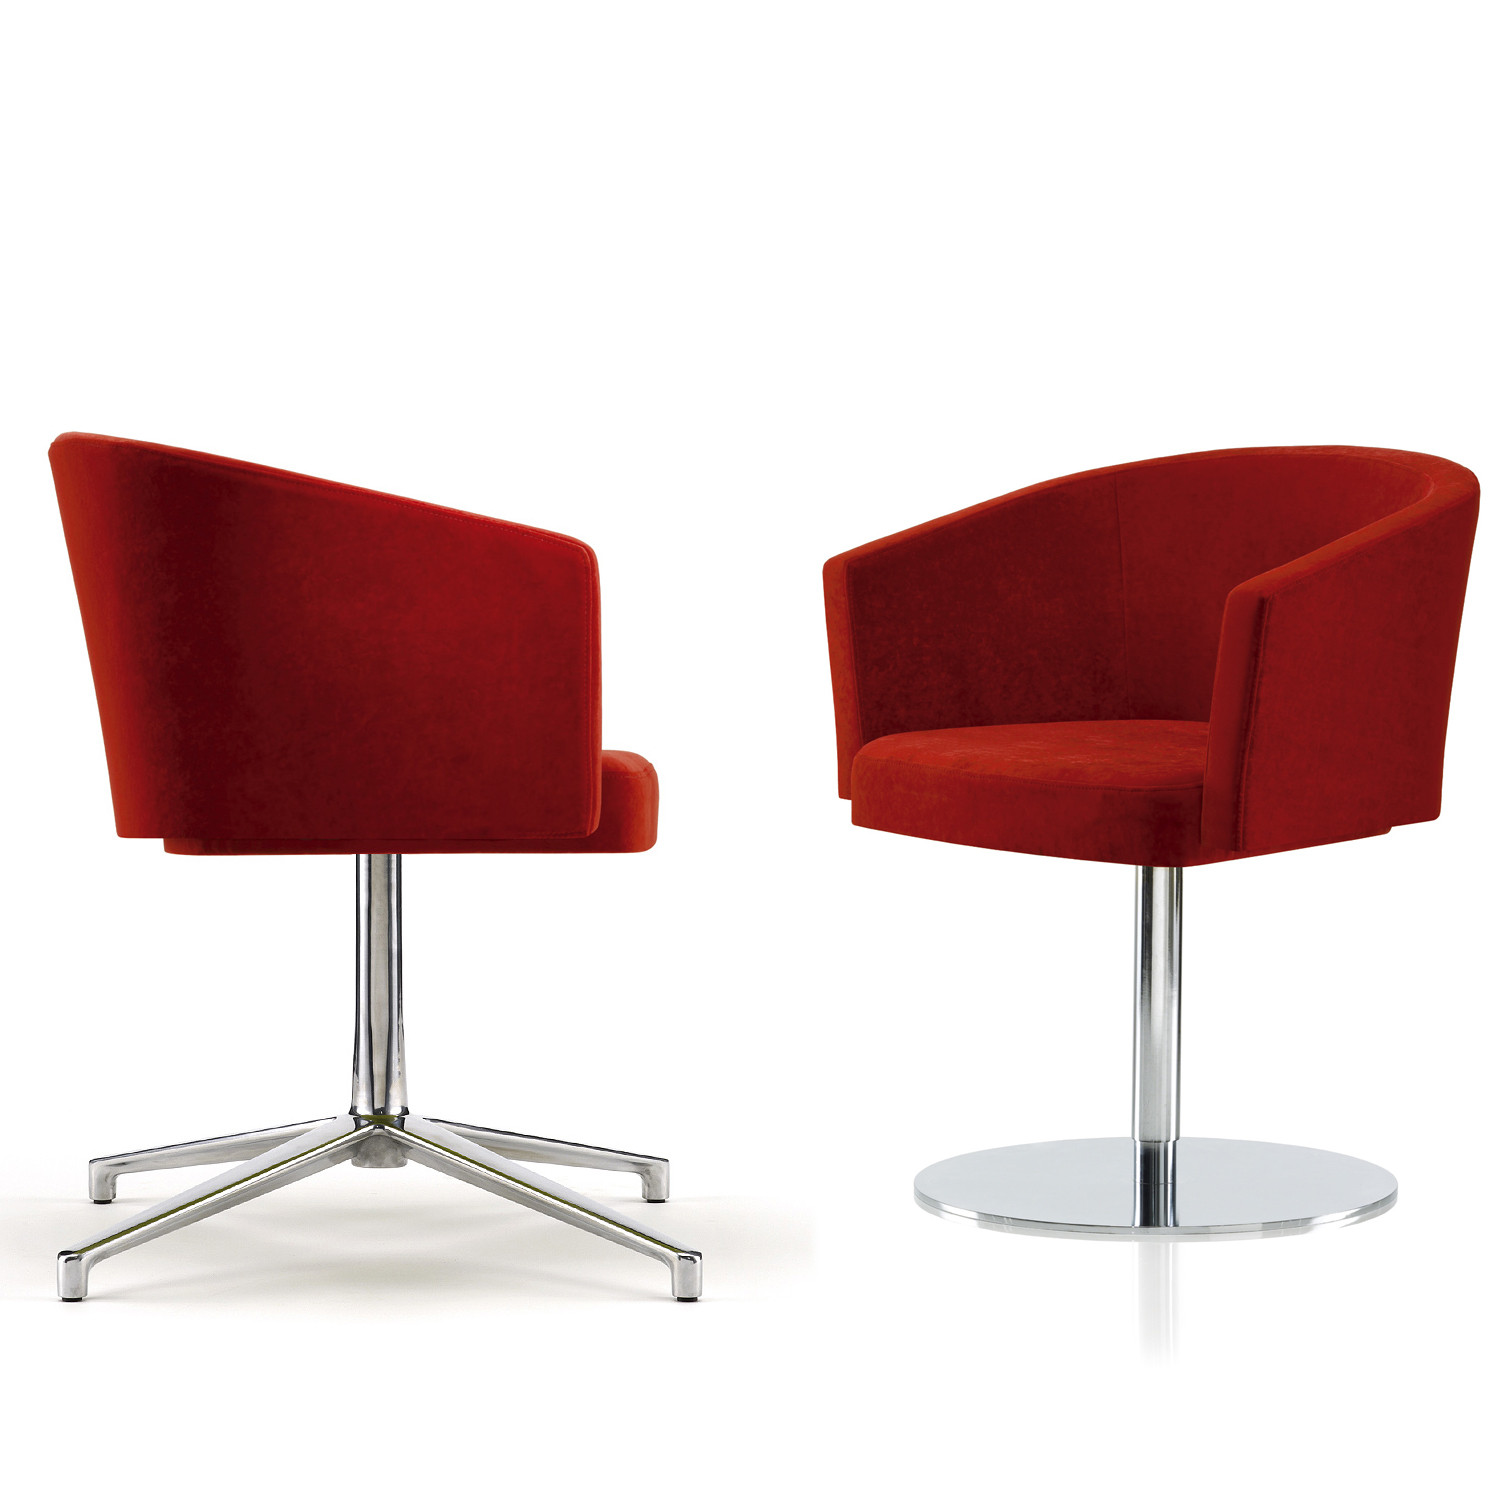 Zone Chairs by Pledge ...  sc 1 st  Apres Furniture & Zone Chair Range | Soft Seating | Apres Furniture